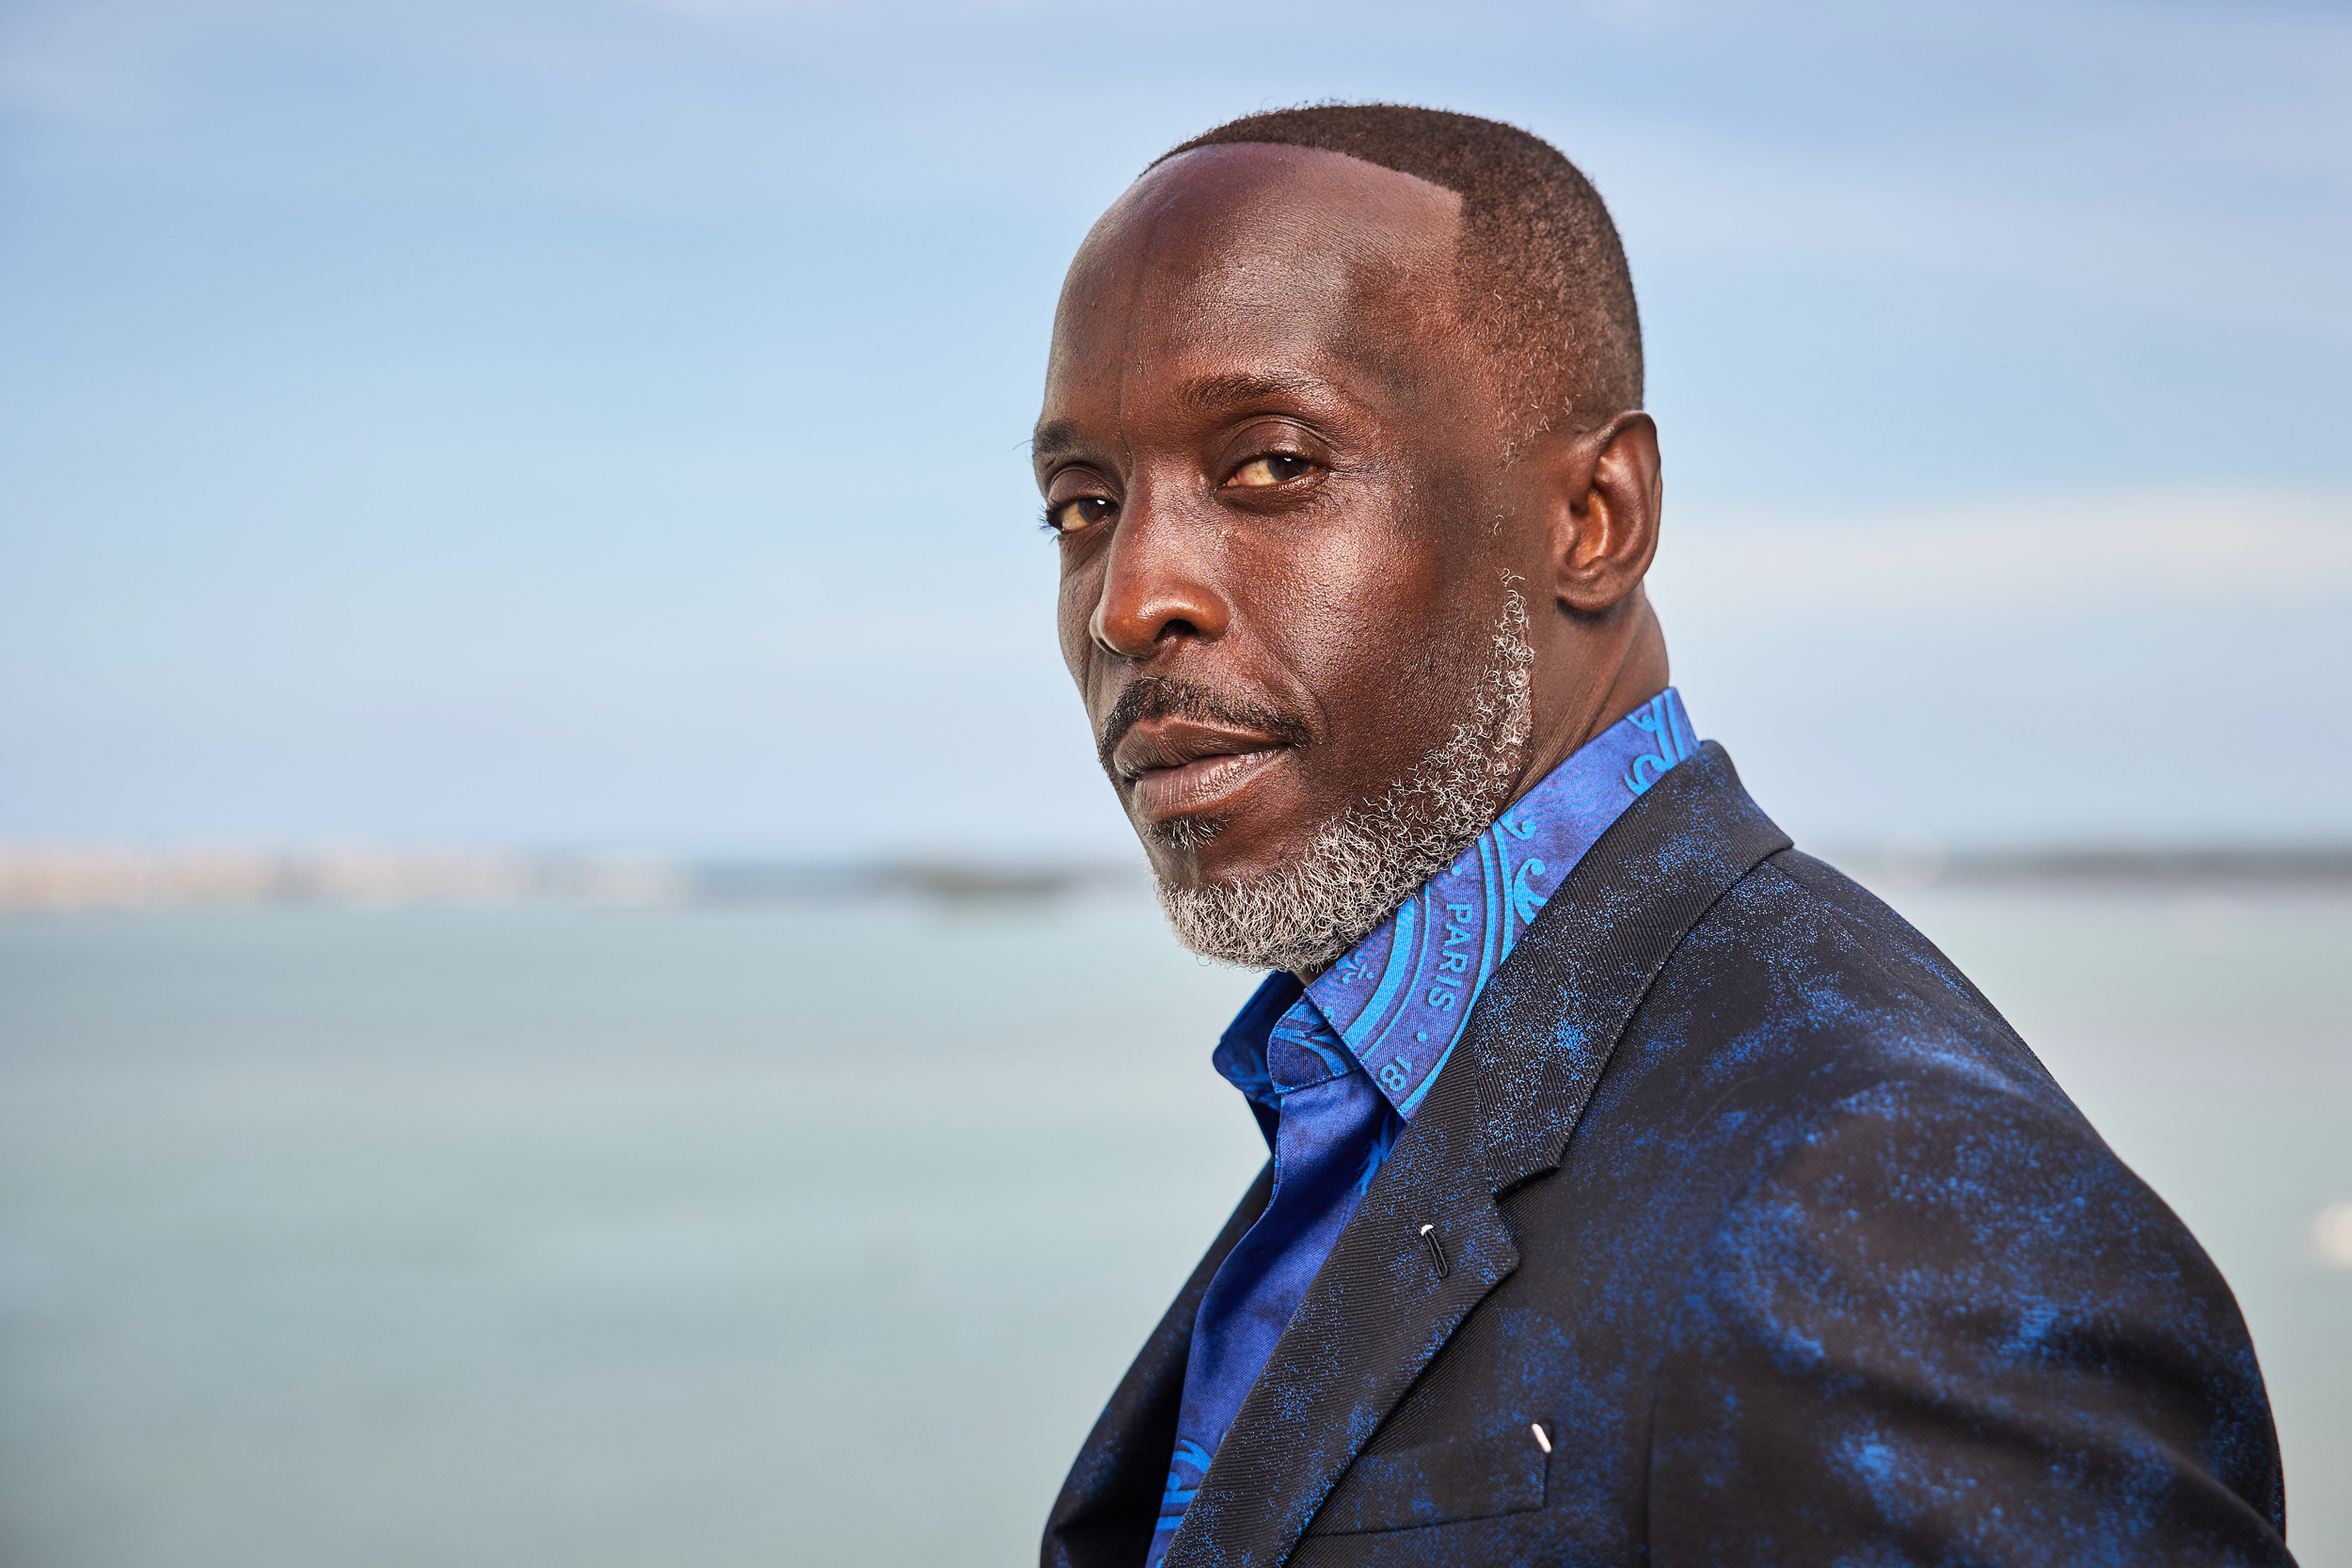 'The Wire' actor Michael K. Williams dead at 54